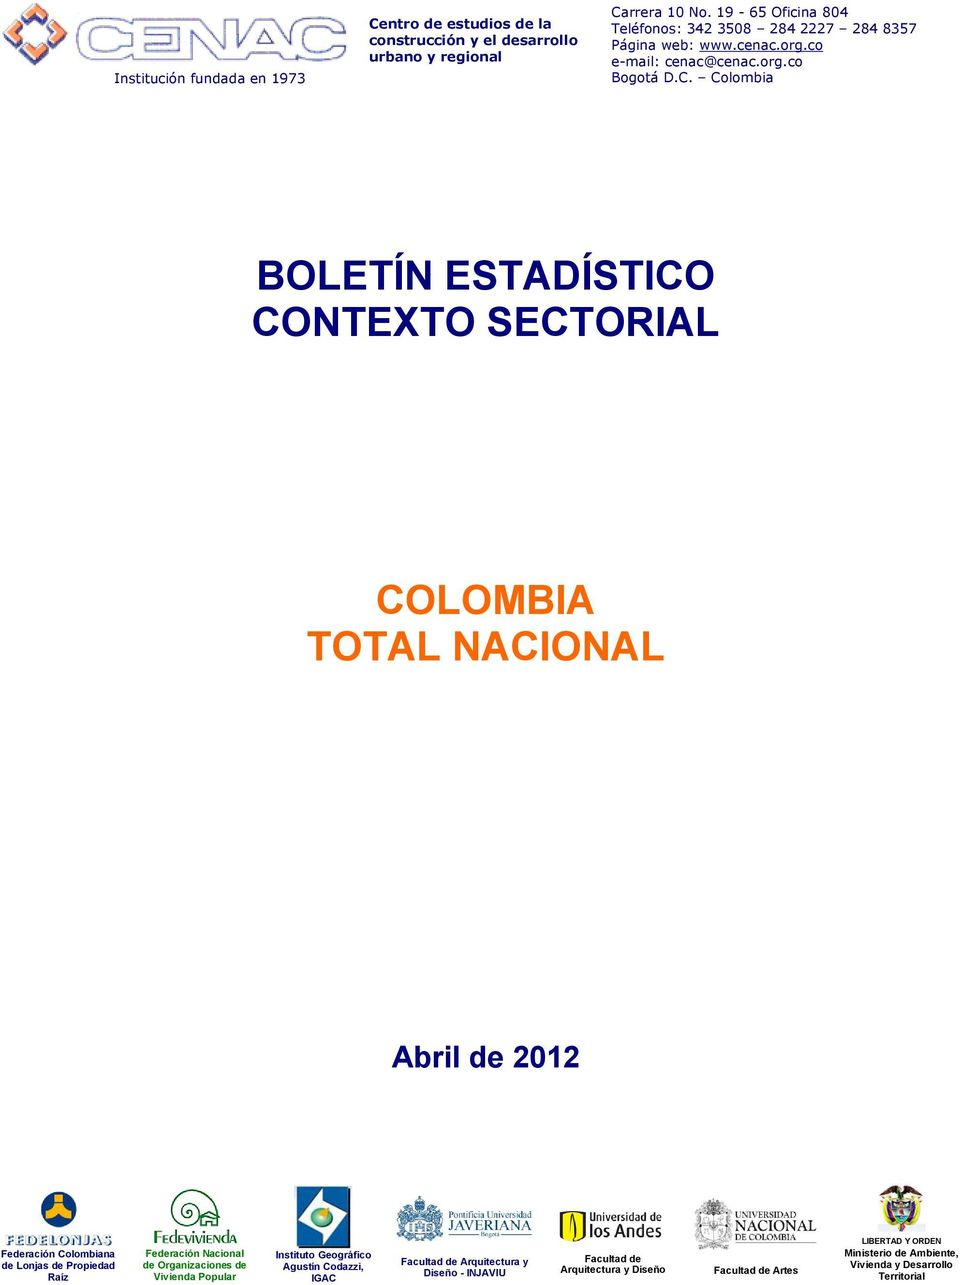 ESTADÍSTCO CONTEXTO SECTORAL COLOMBA TOTAL